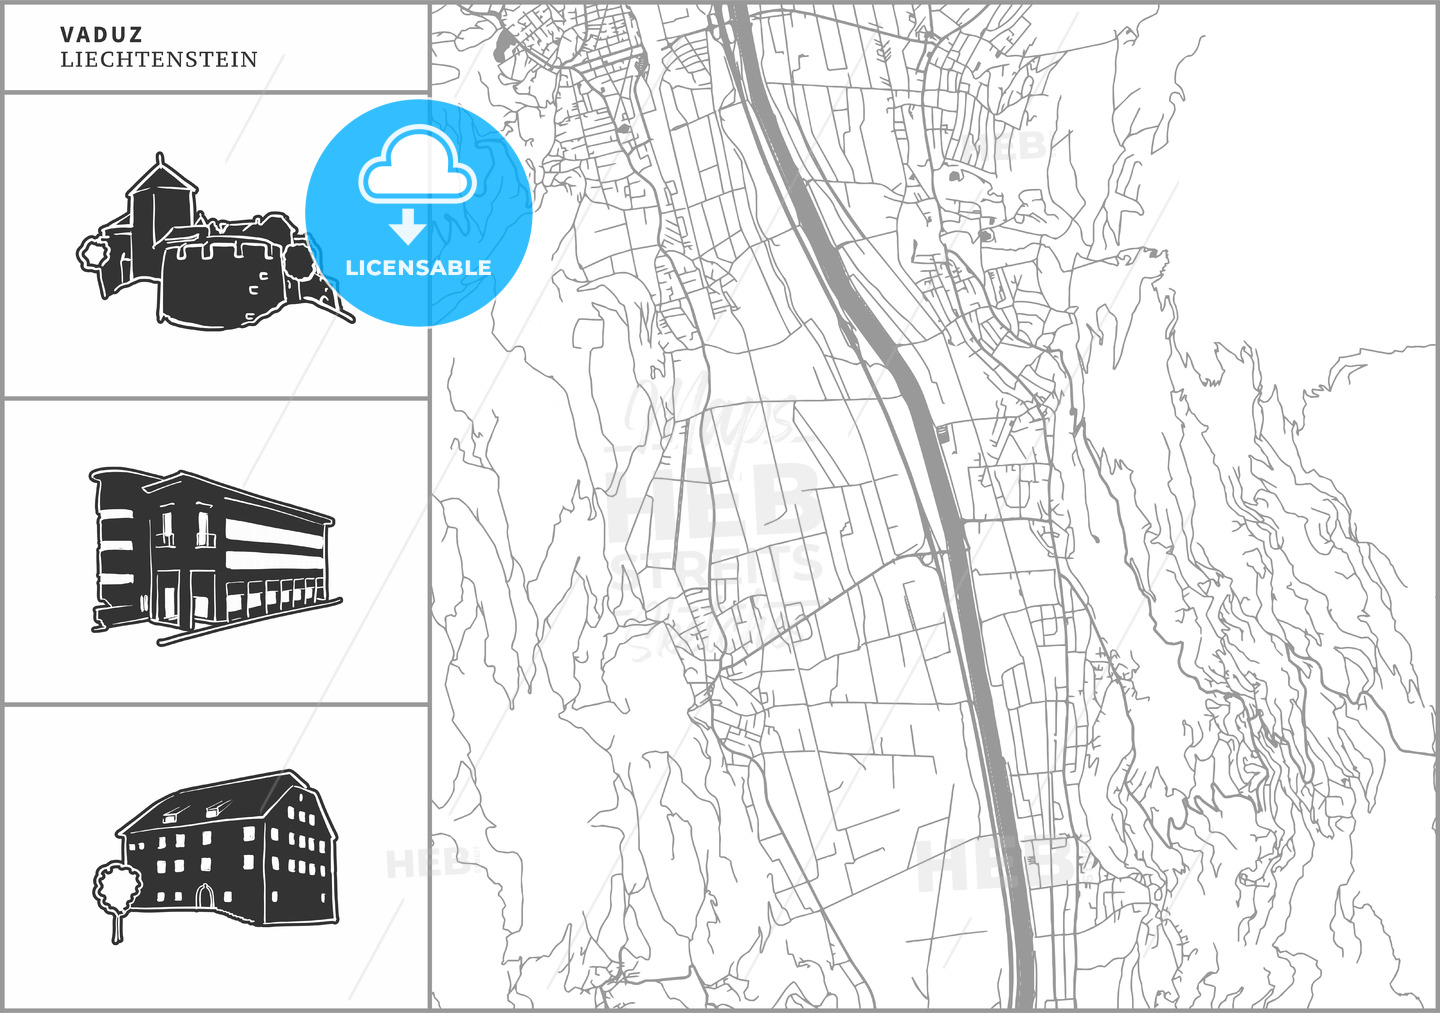 Vaduz city map with hand-drawn architecture icons - HEBSTREITS